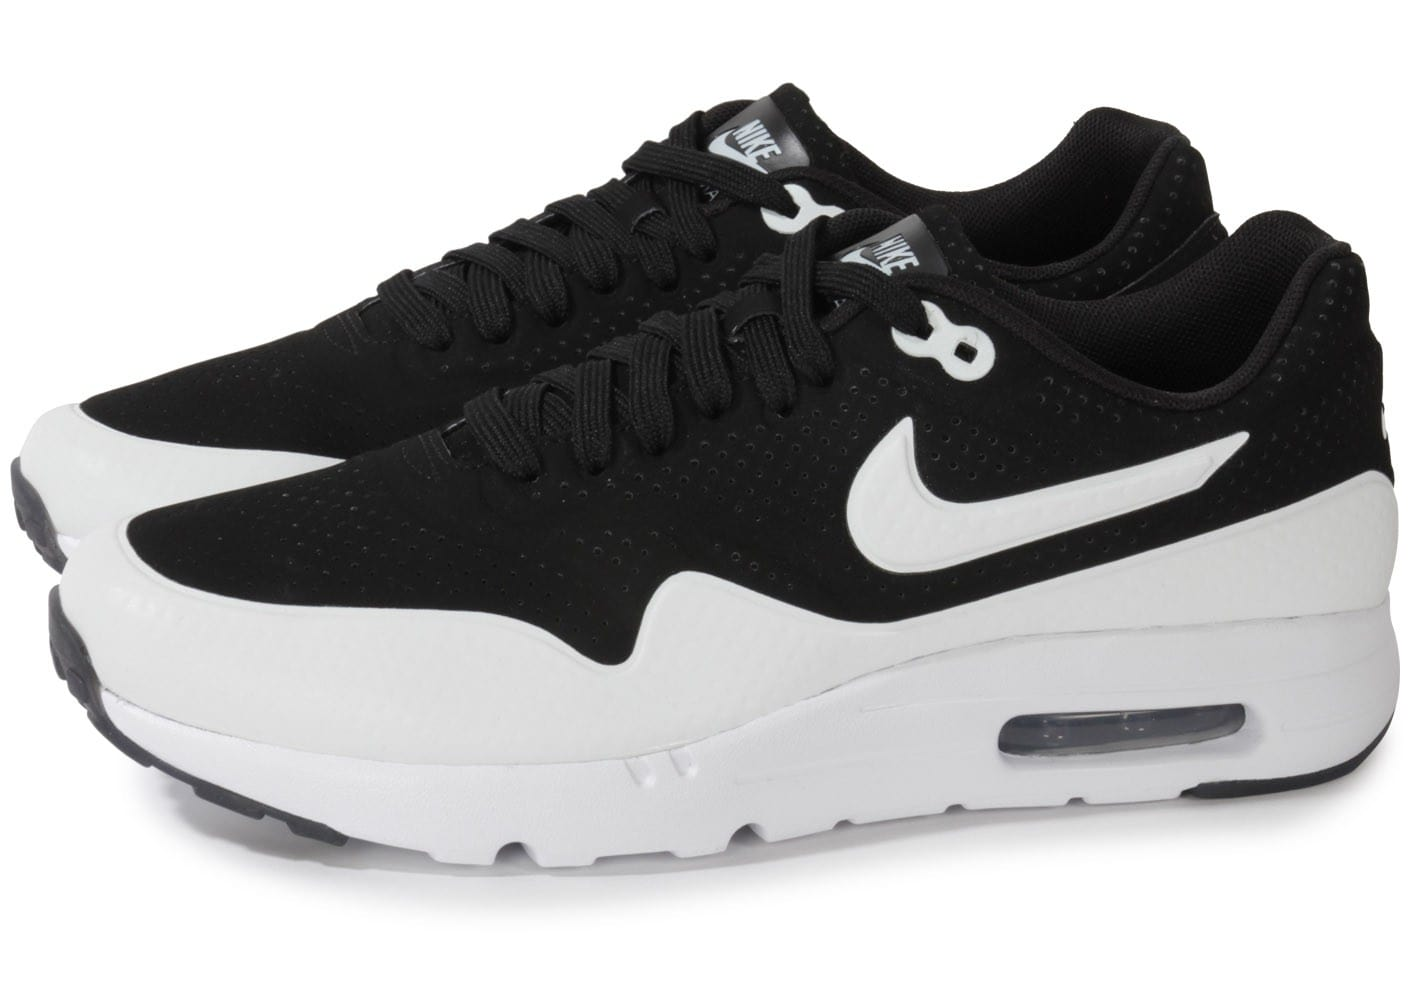 nike air max 1 ultra moire black silver white chaussures homme chausport. Black Bedroom Furniture Sets. Home Design Ideas